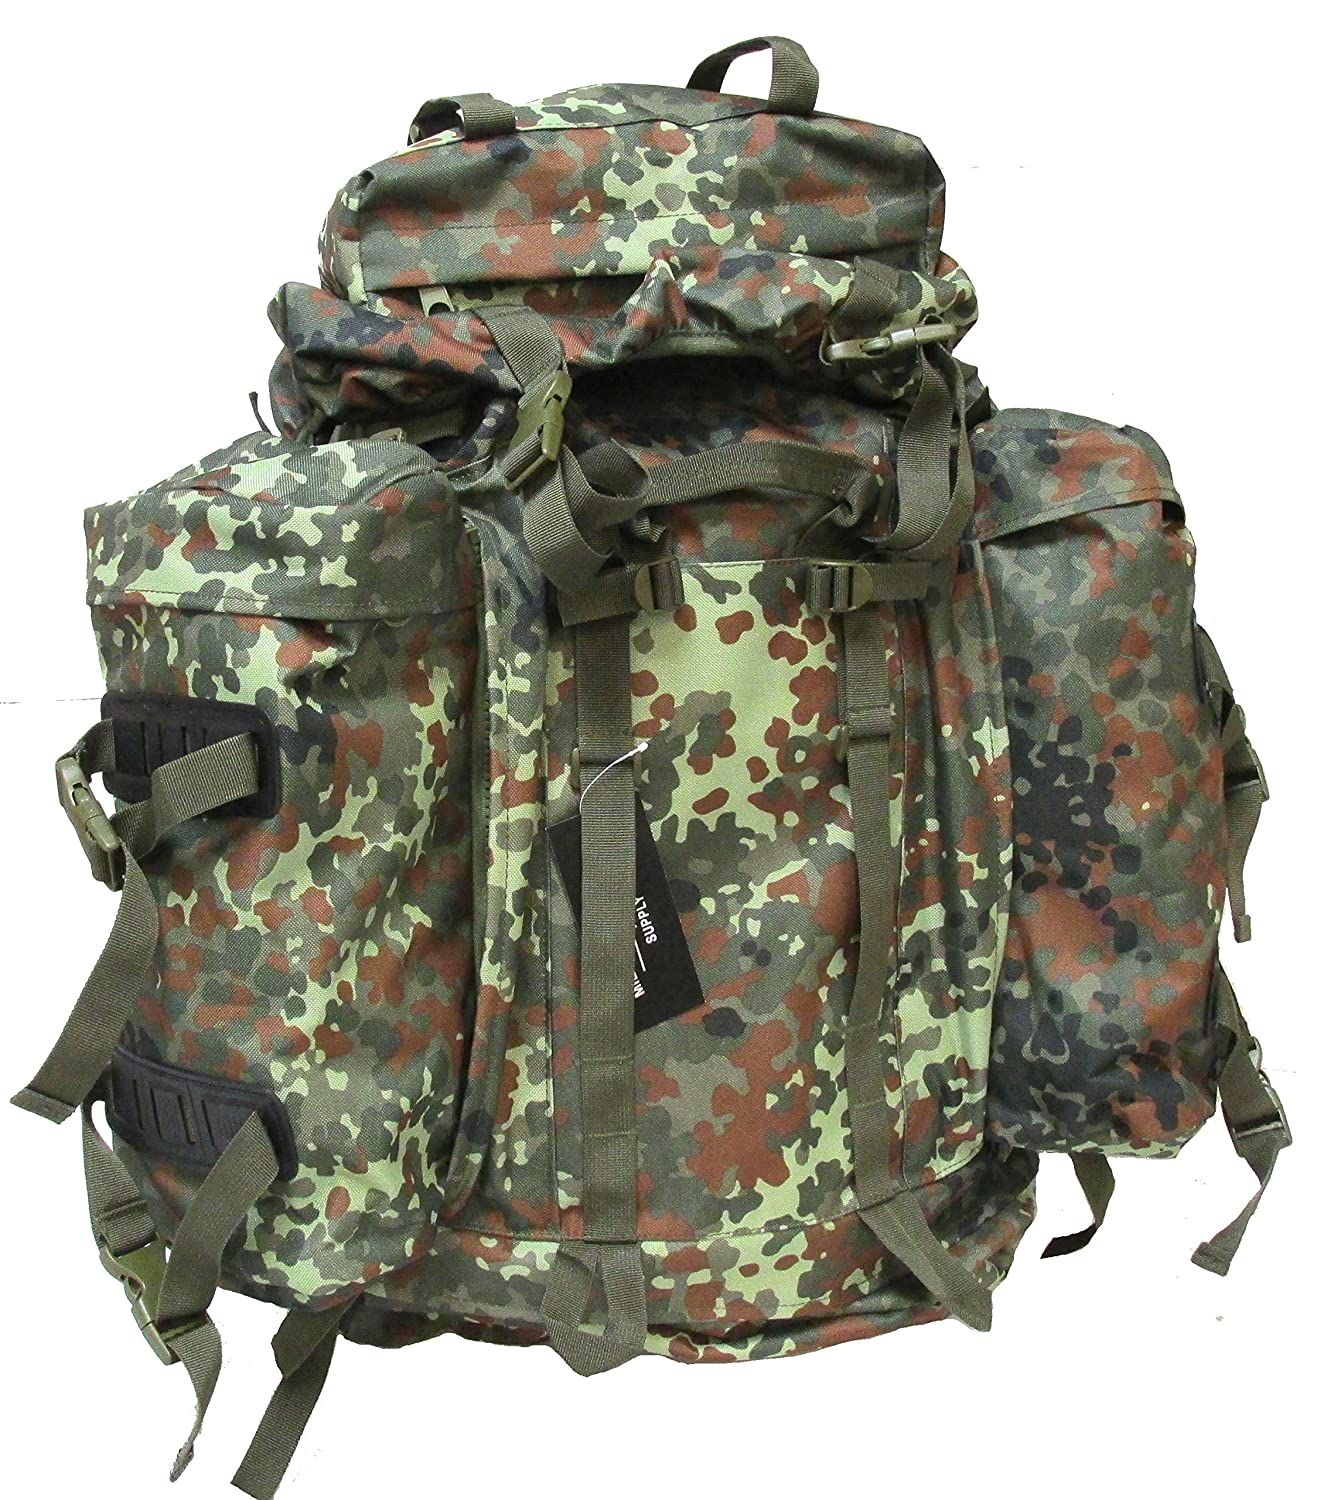 71f9f33dc22d Amazon.com : Military Uniform Supply Mountain Rucksack with ...